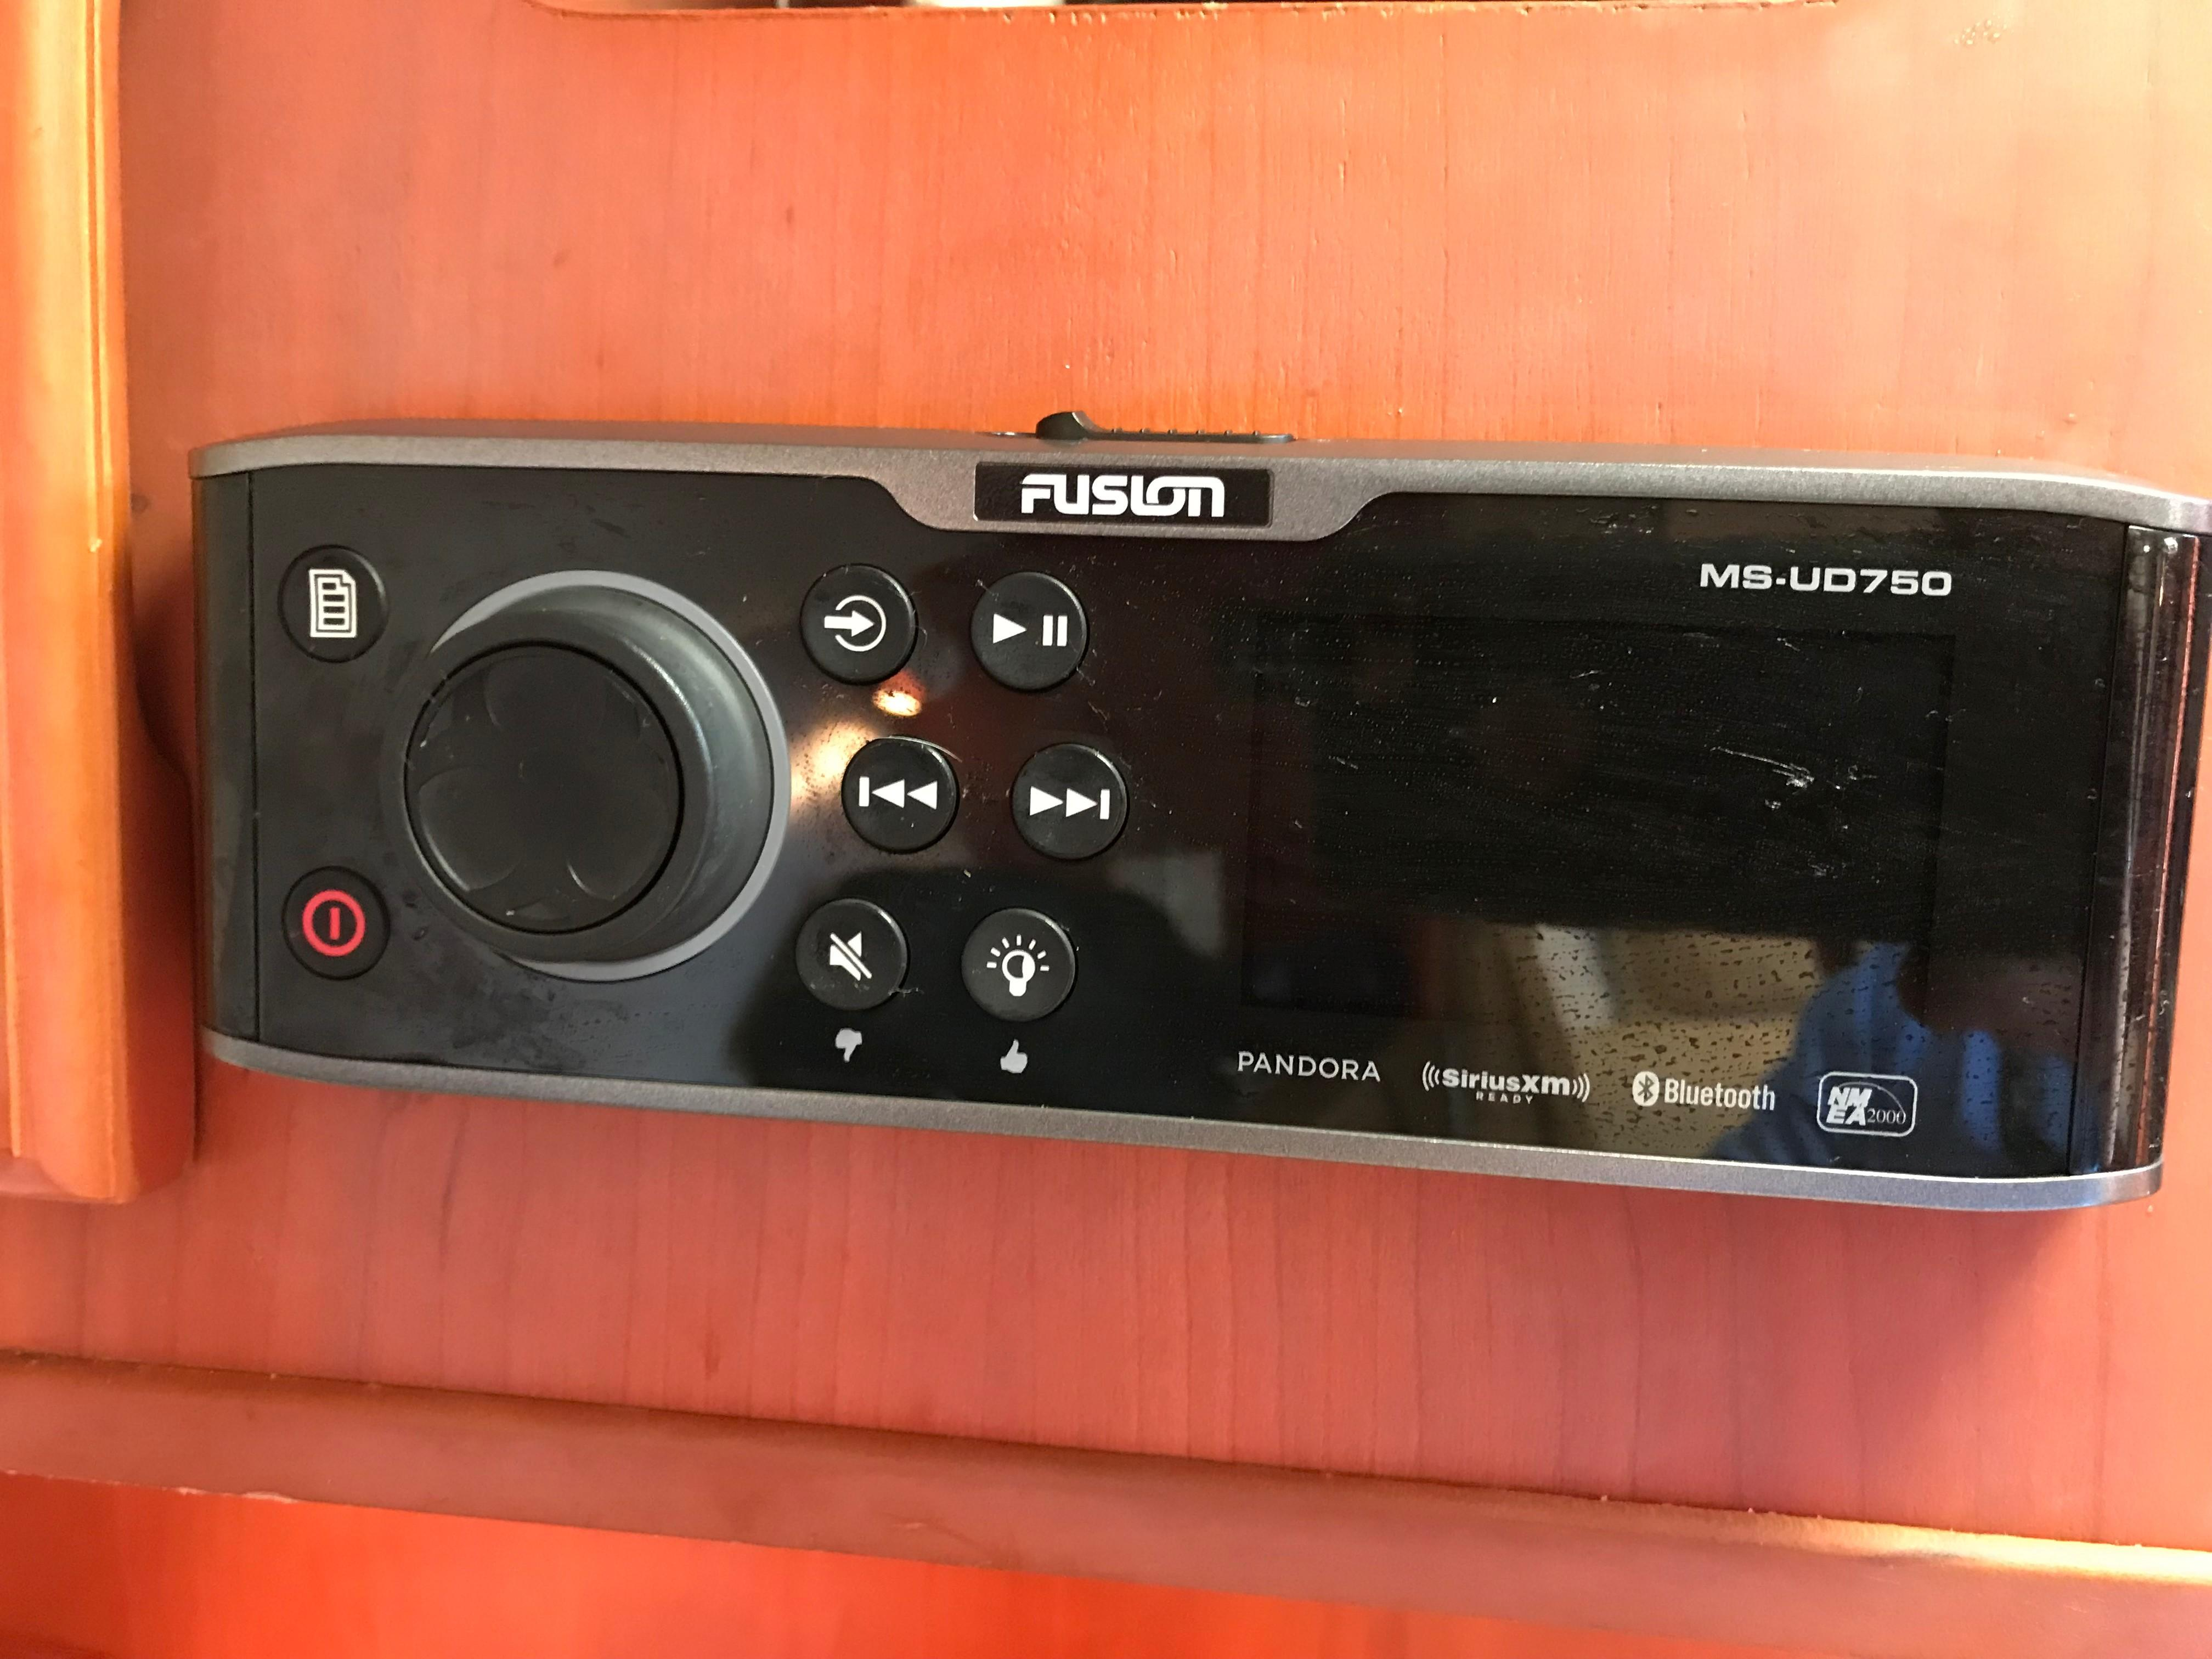 Luhrs 32 Express - Fusion Stereo